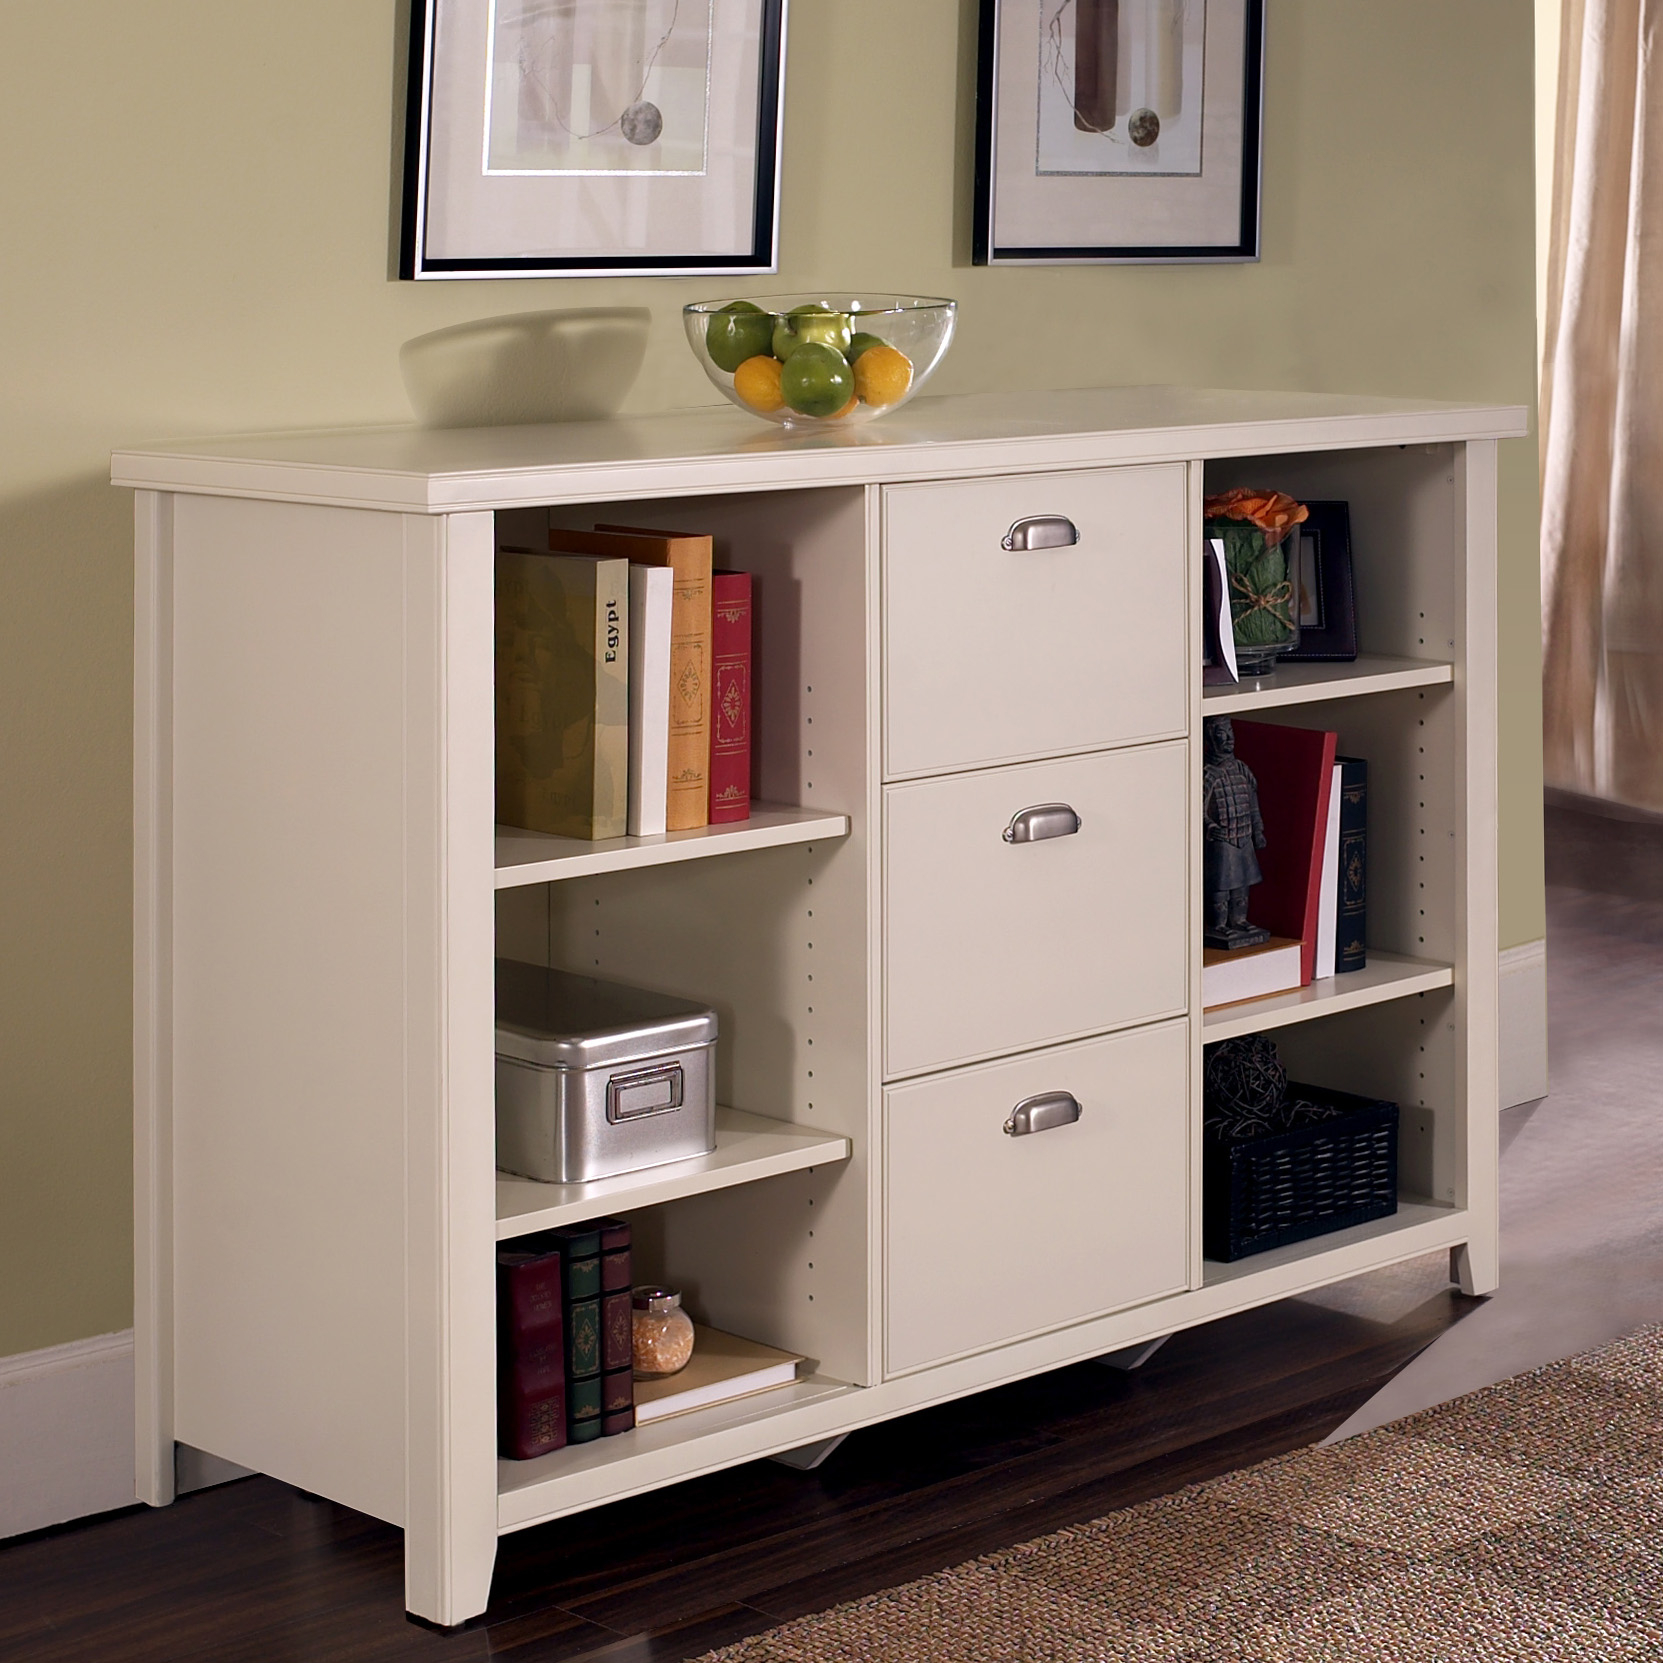 Delicieux Kathy Ireland File Cabinet 2